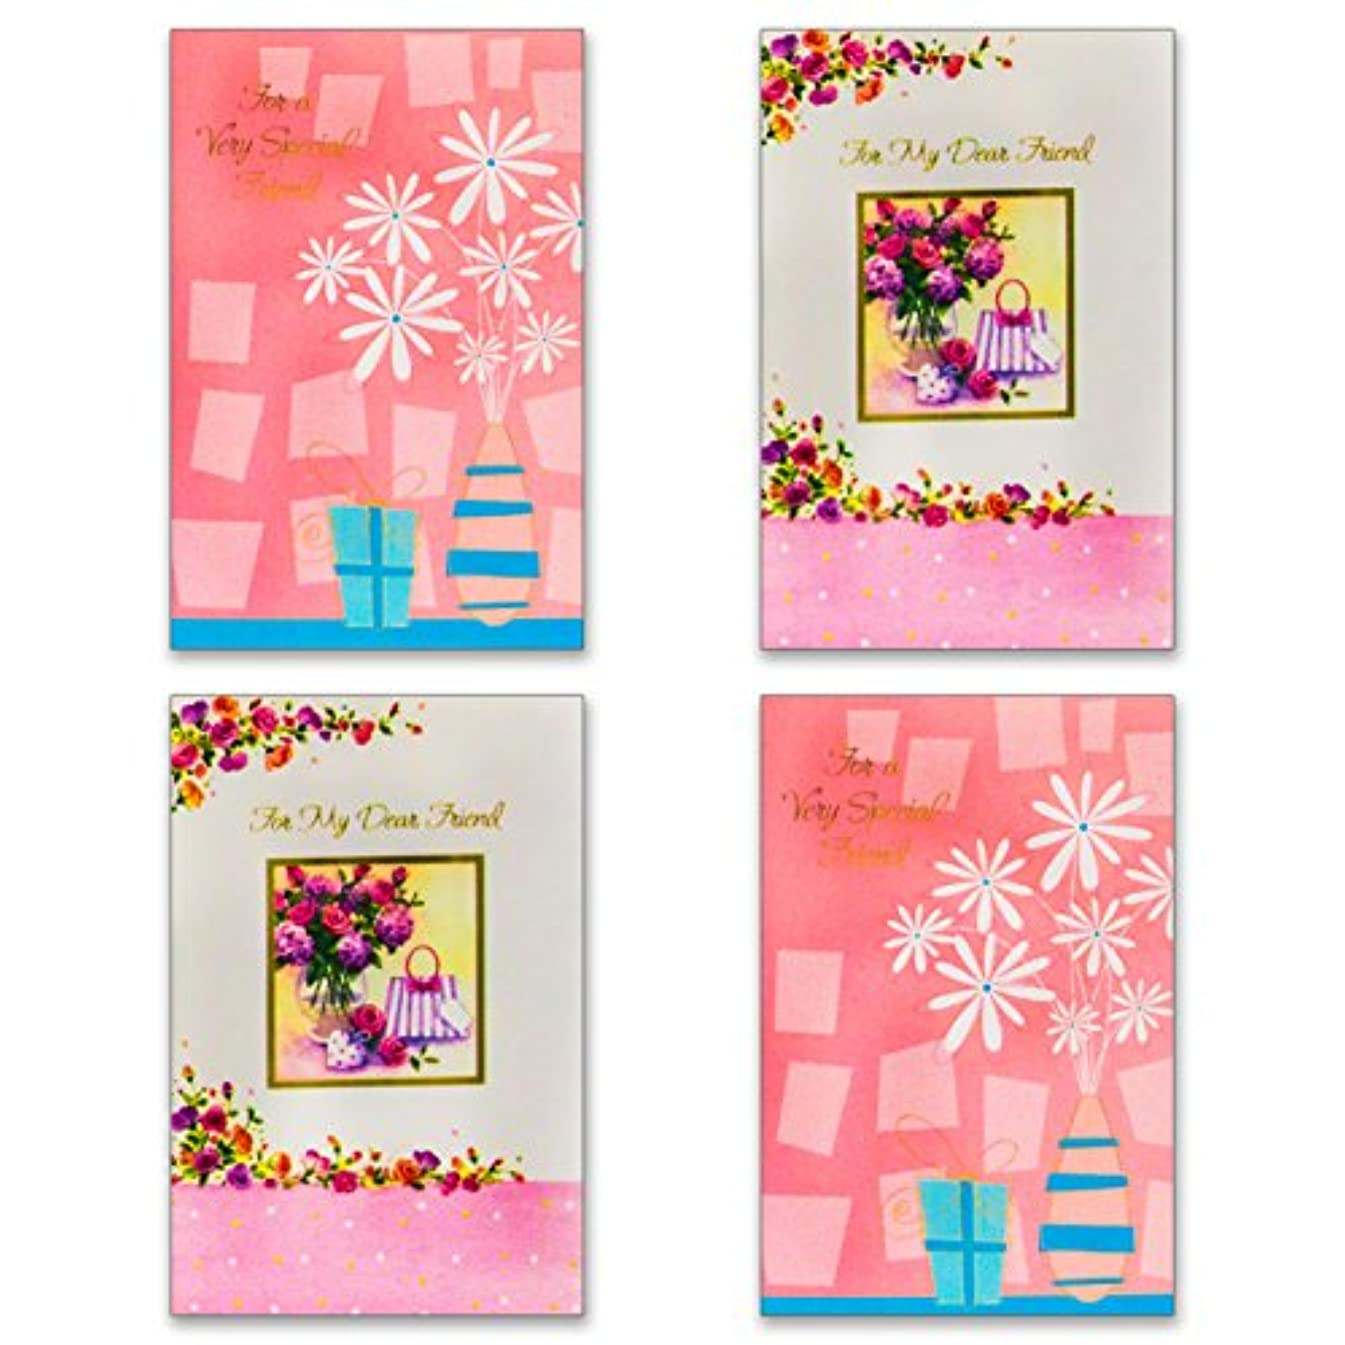 12 Friendship Cards with Envelopes - Boxed Enclosure Cards 4 Different Designs. Fantus Paper 5050-FR1